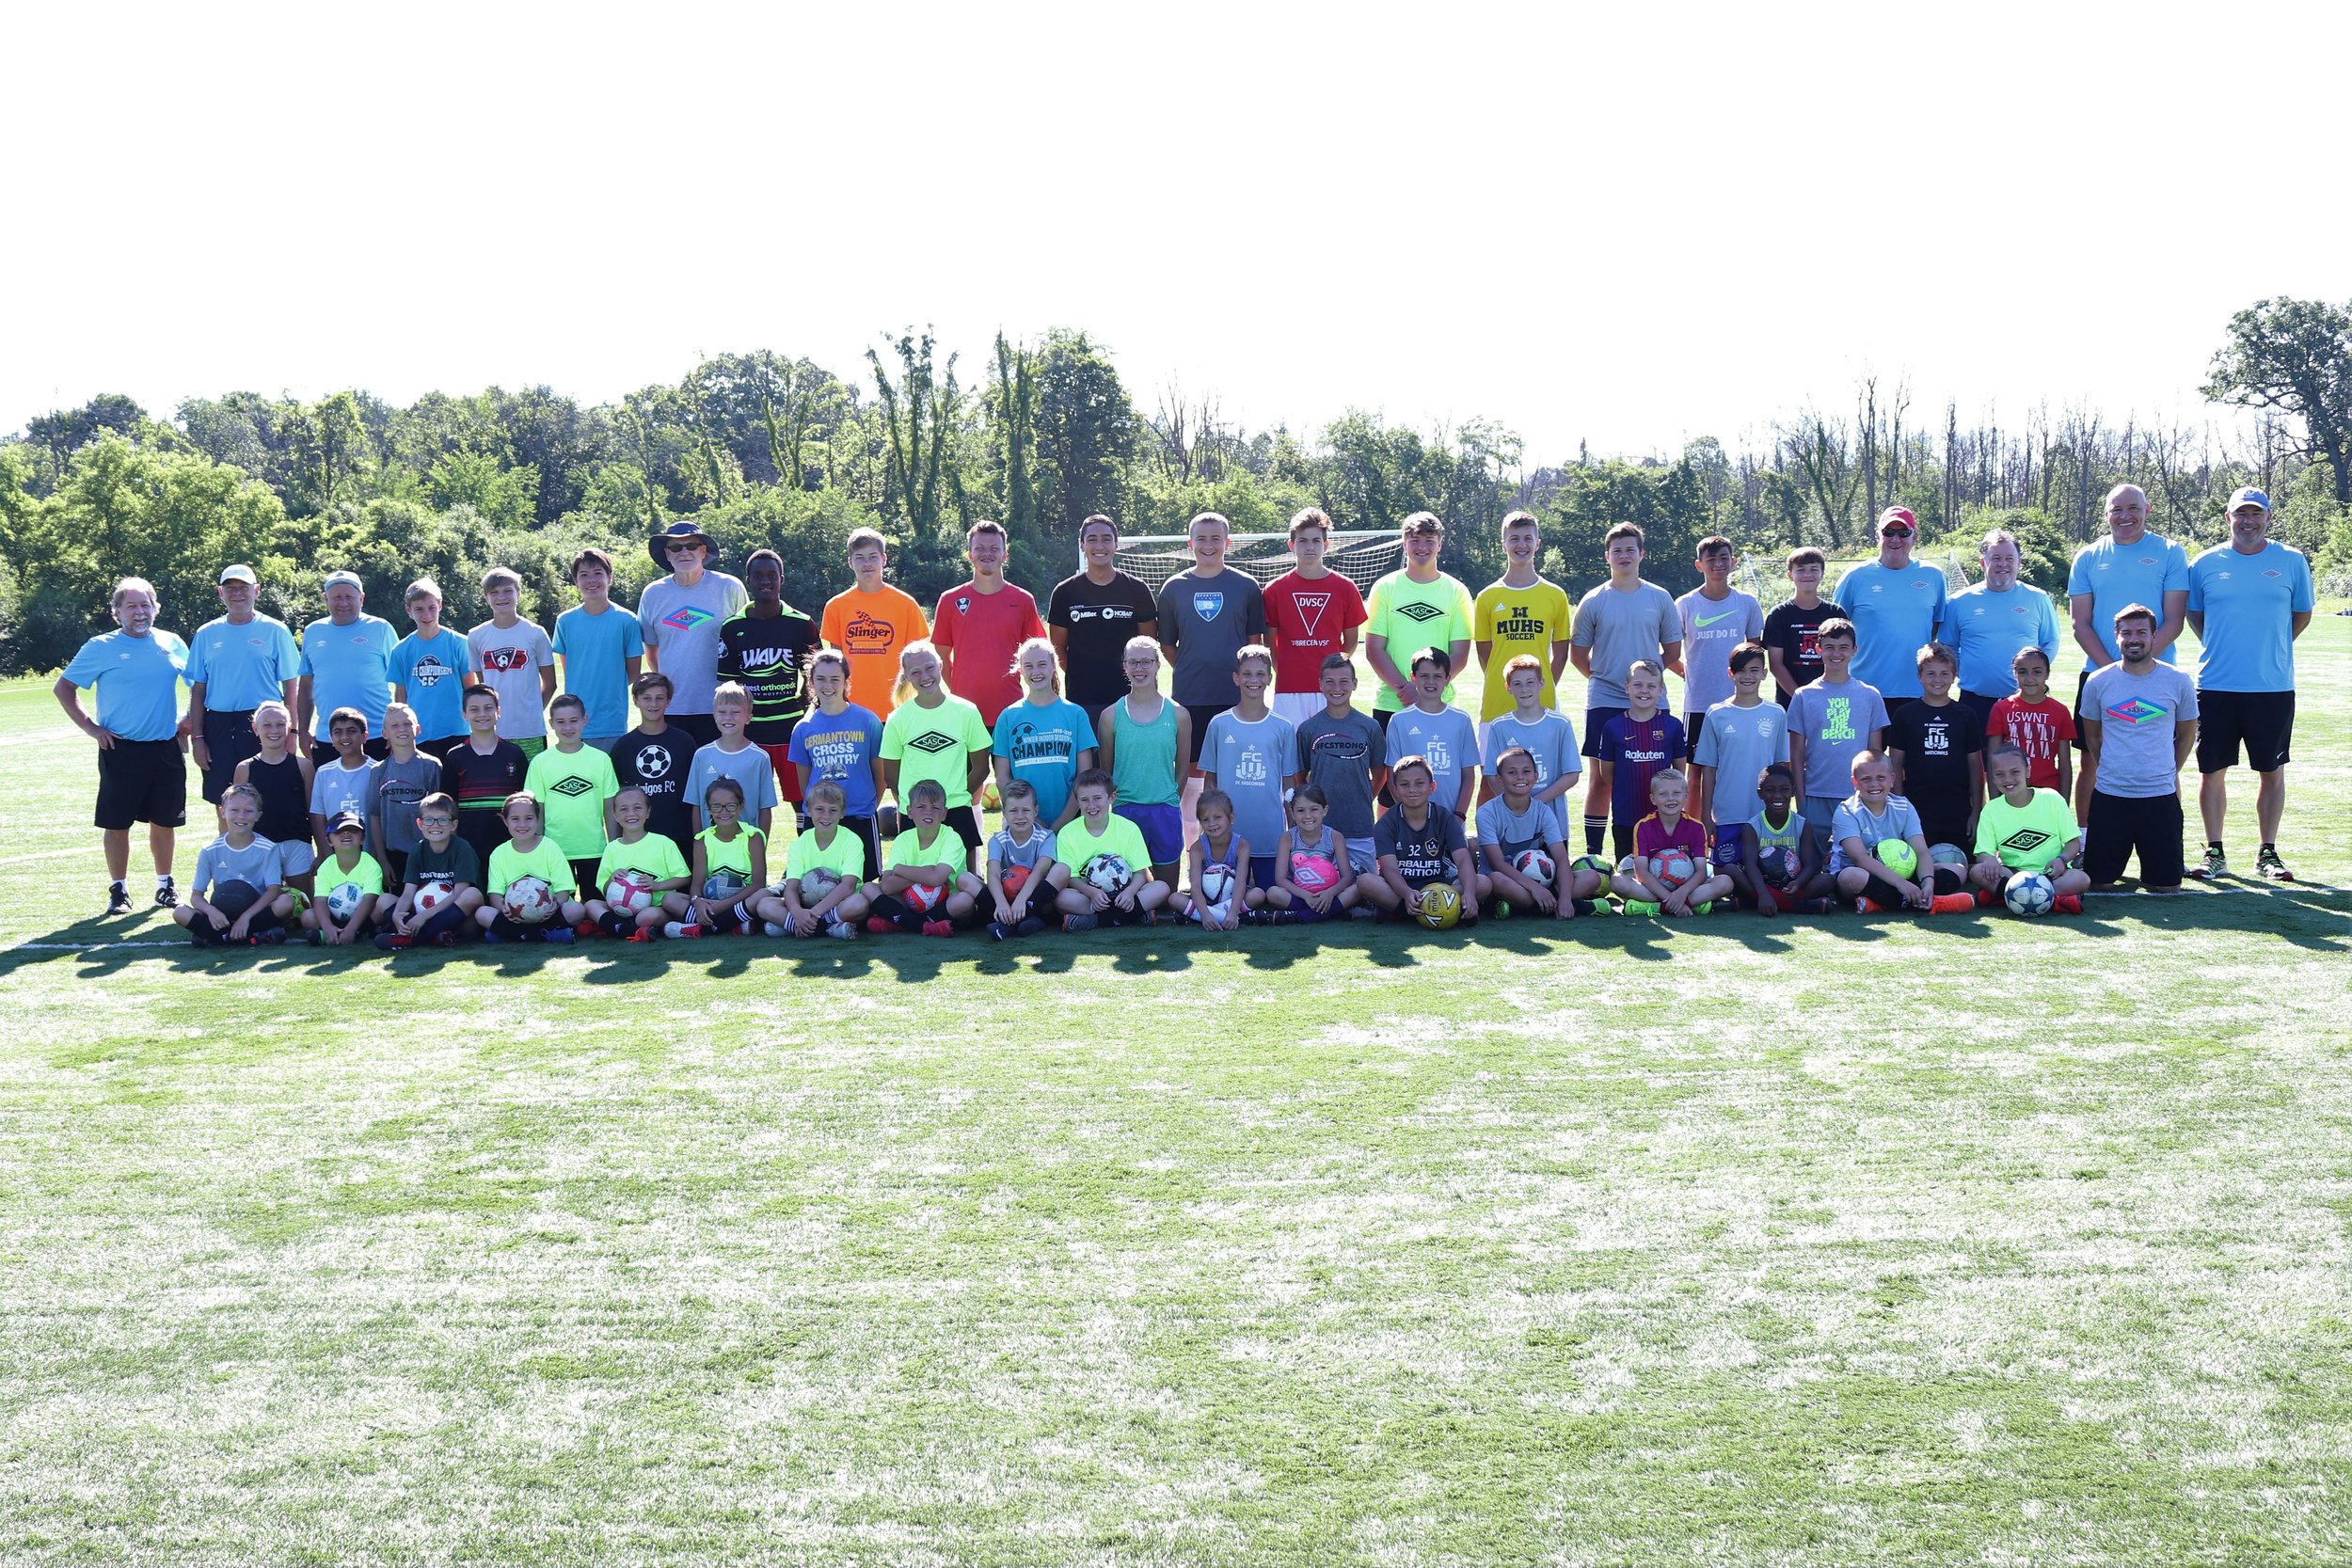 The camp photo with a few players missing because they could not be there on Friday when we took the photo.